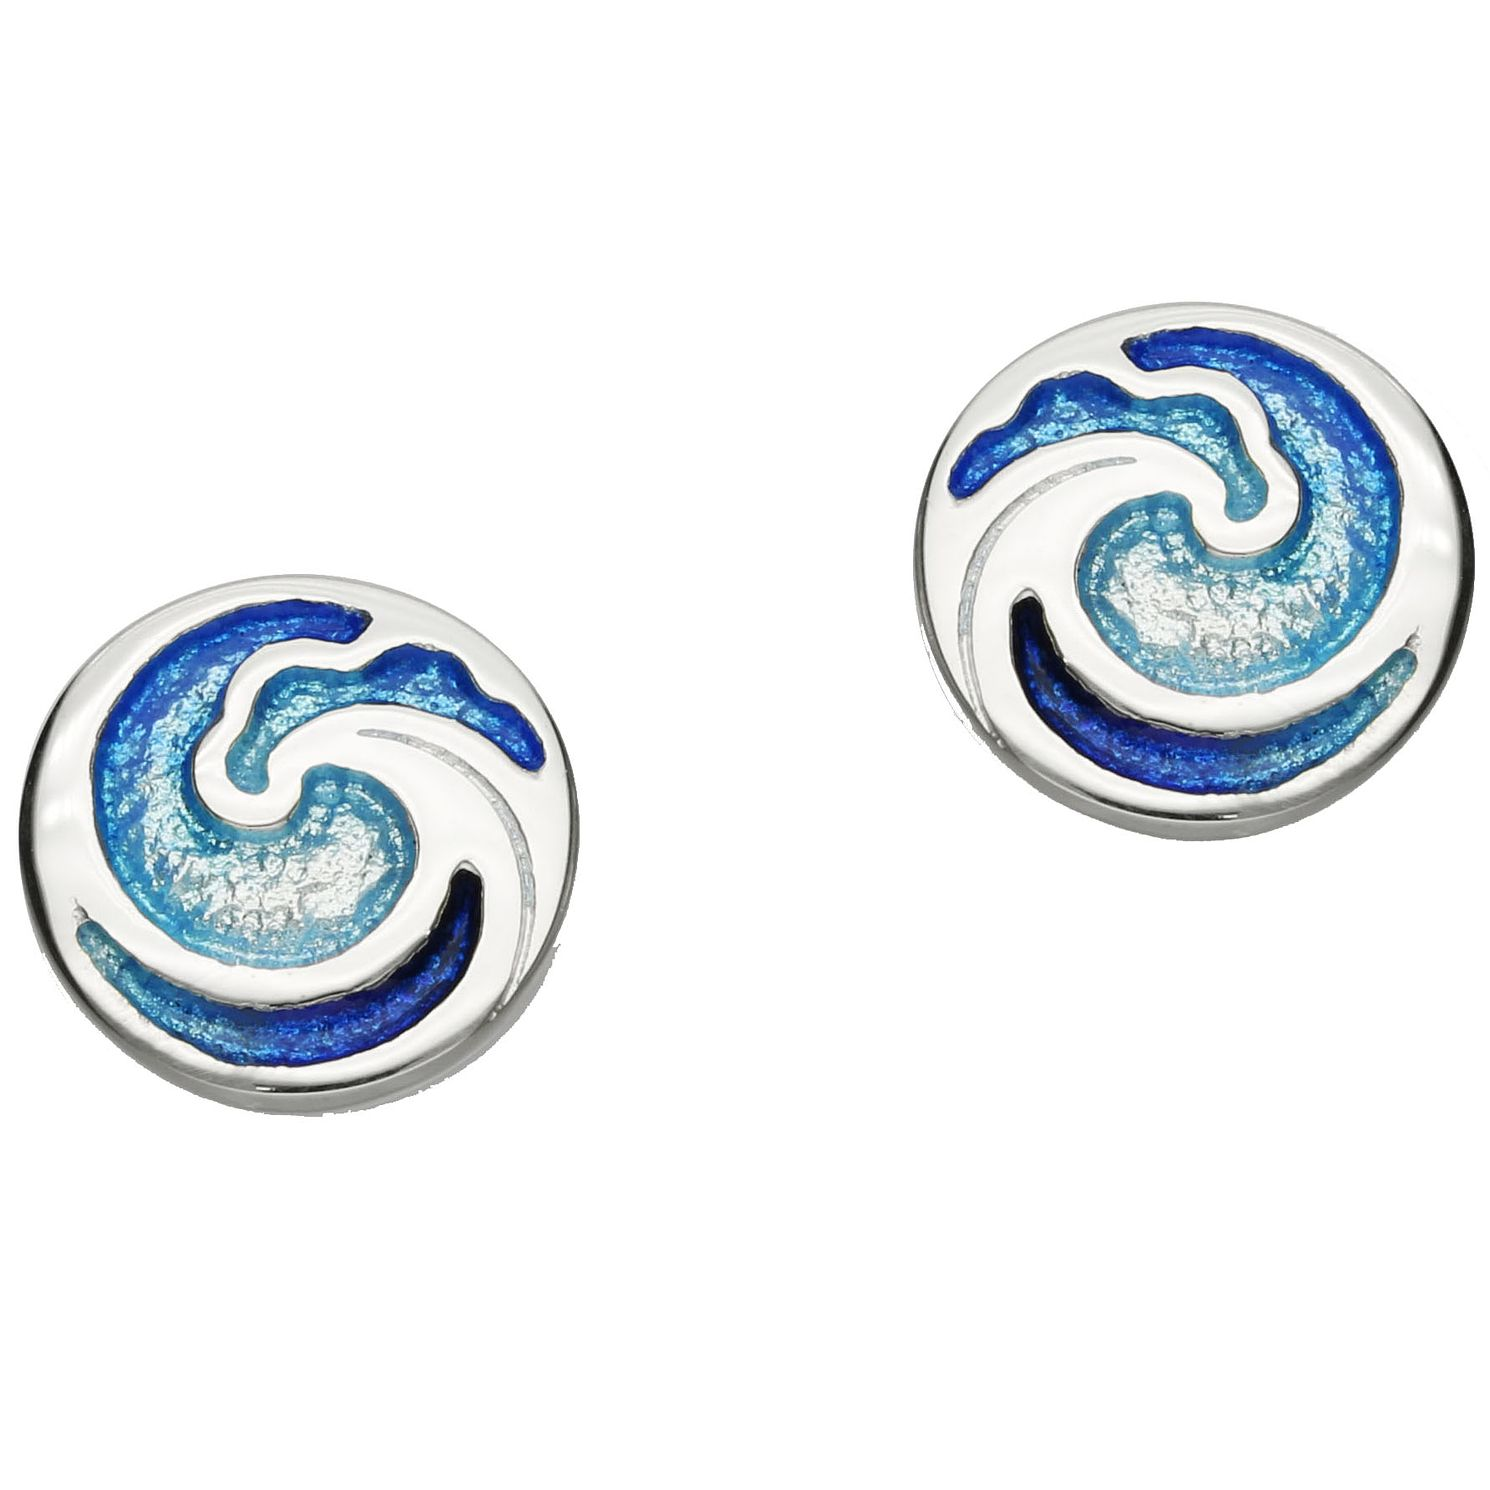 Ortak Coastal Sterling Silver Stud Earrings - Product number 5120330